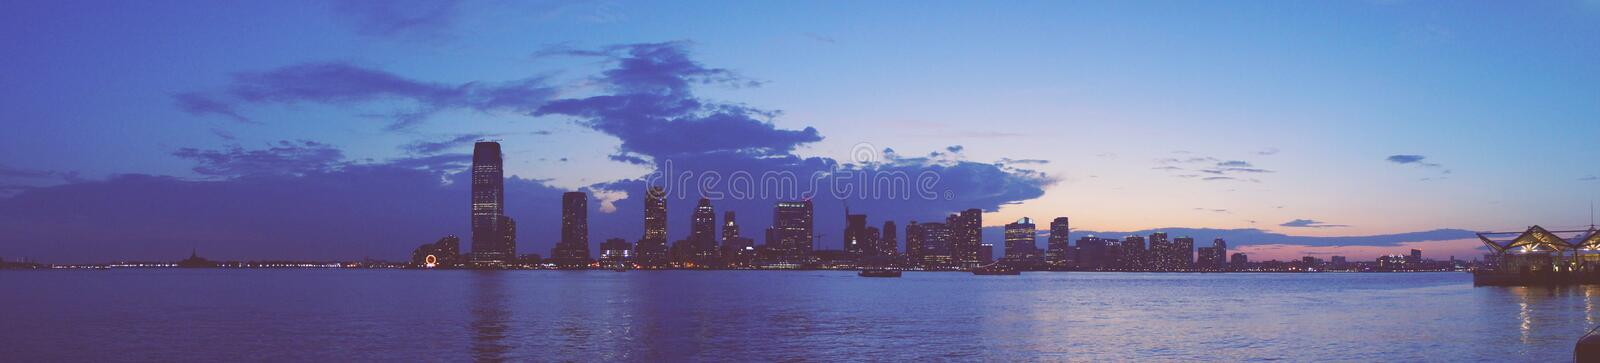 Panorama da skyline de Jersey City de Manhattan imagem de stock royalty free